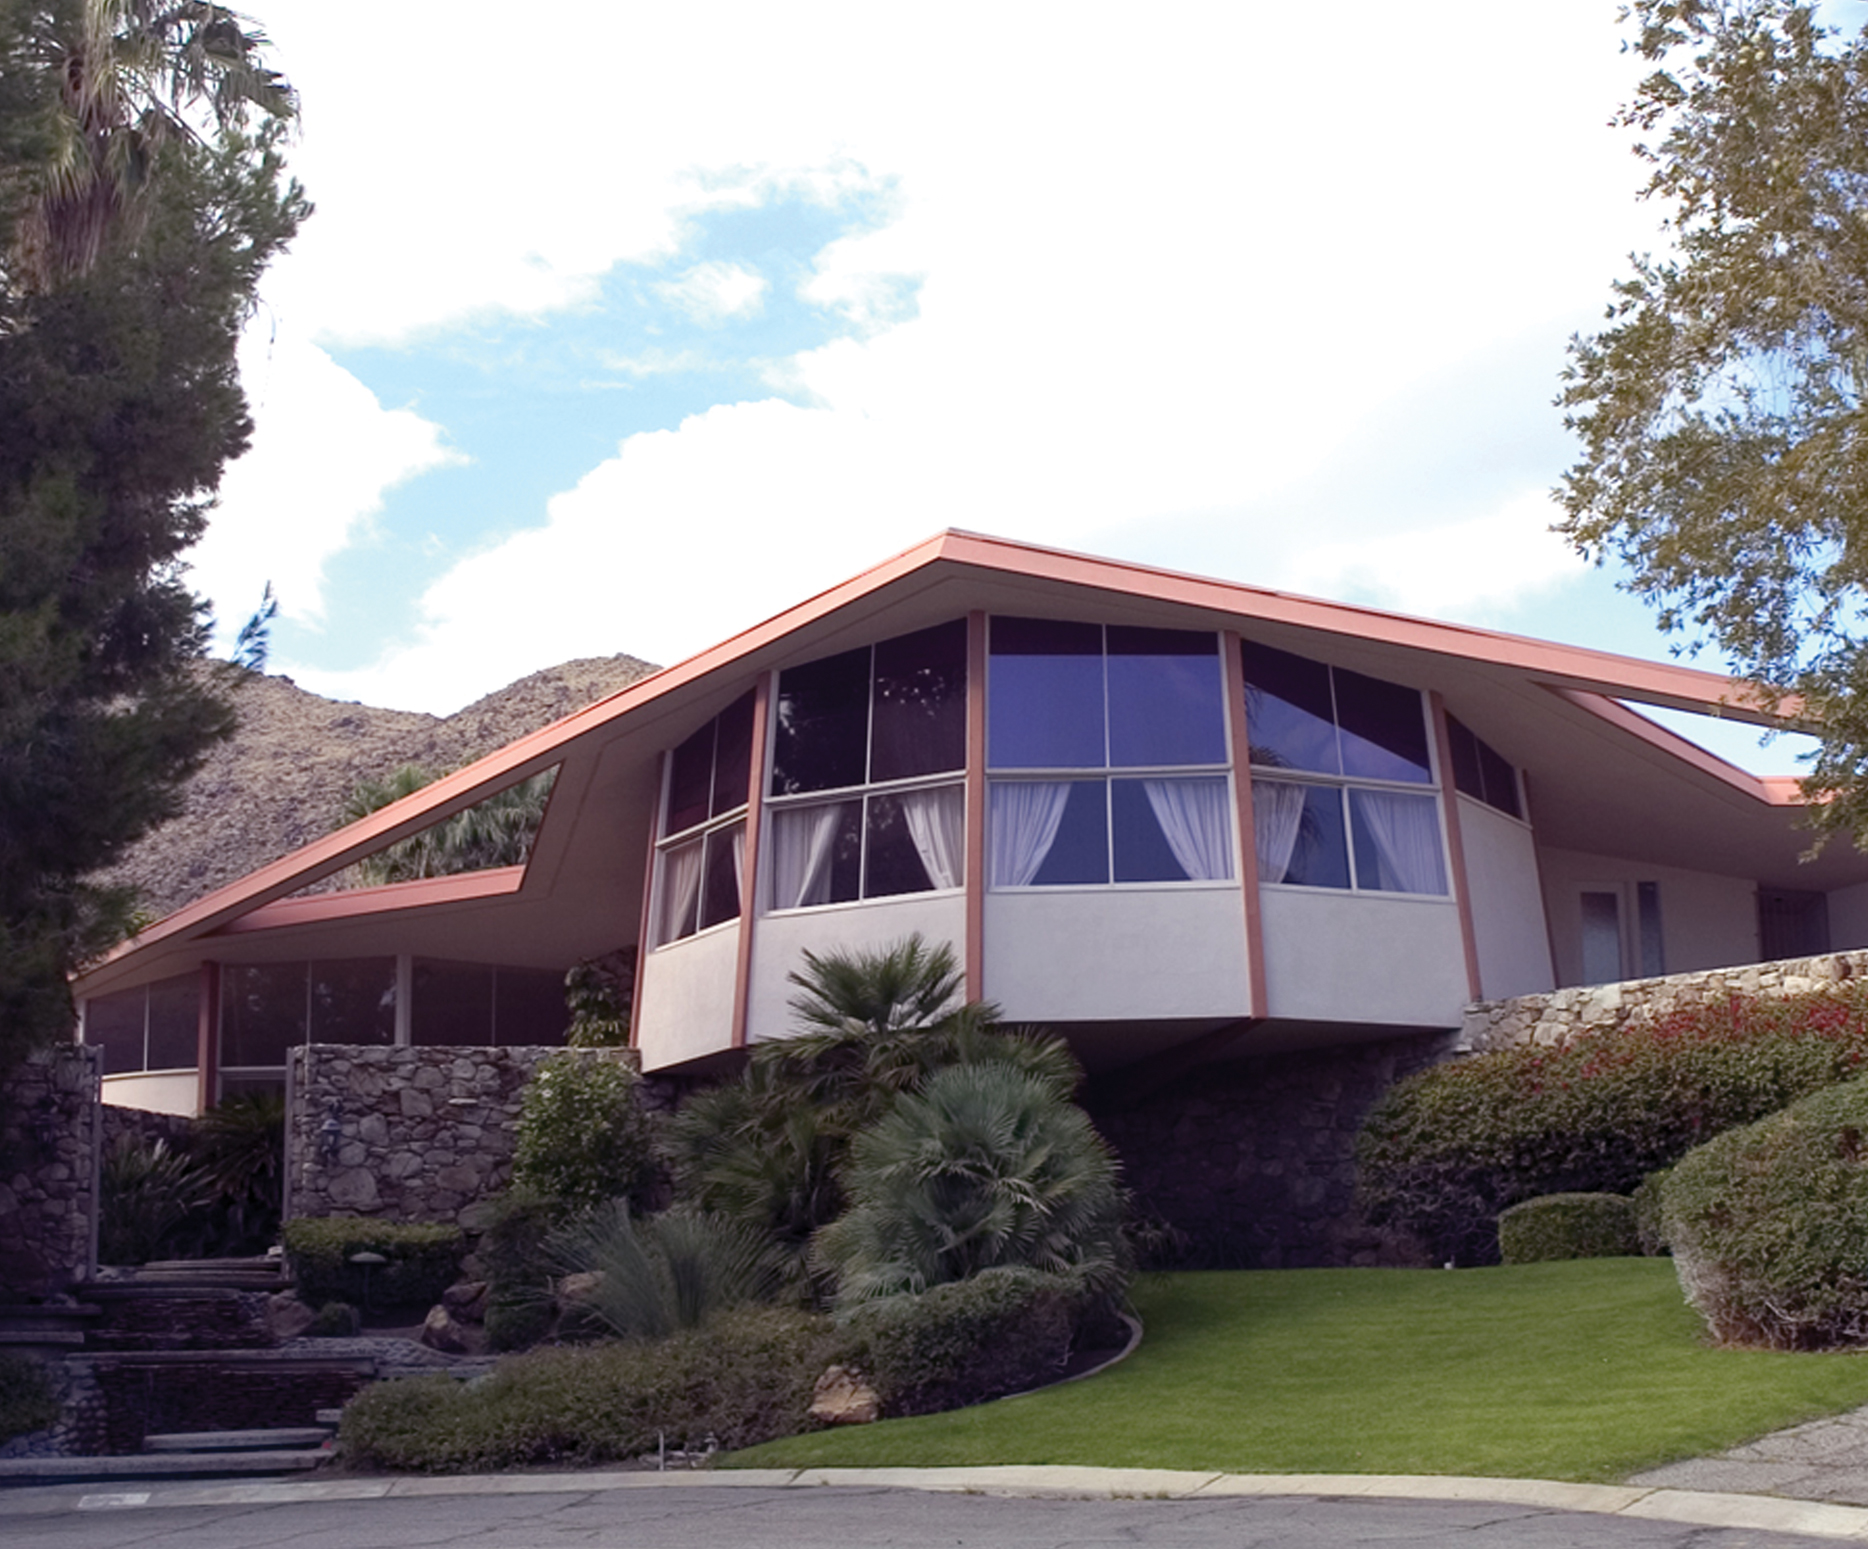 The mid-century exterior has big, rounded windows with drawn curtains and a space-age looking roof.